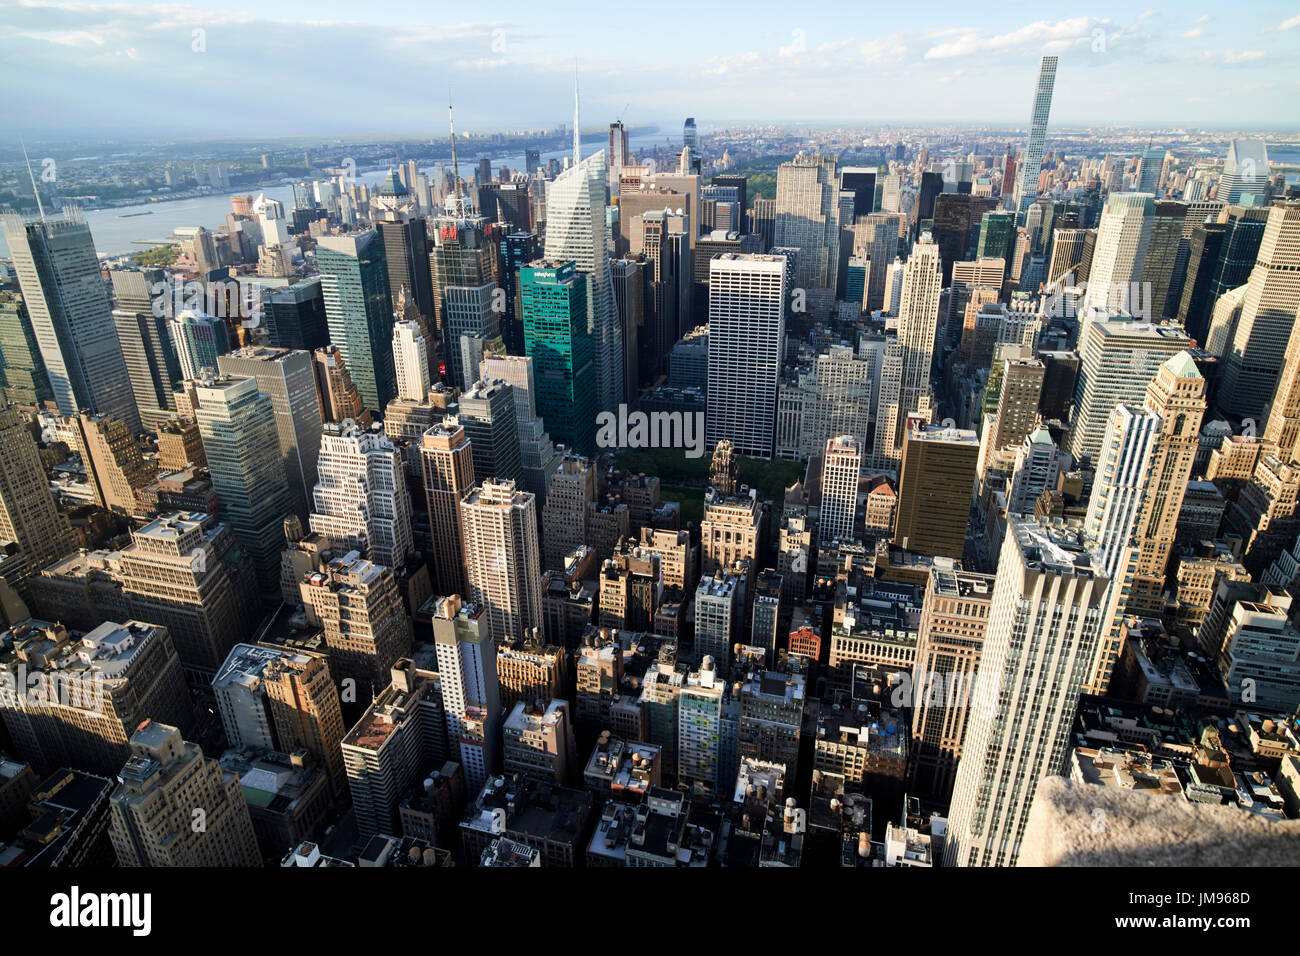 aerial view of midtown north central manhattan viewed from empire state building observatory New York City USA Stock Photo